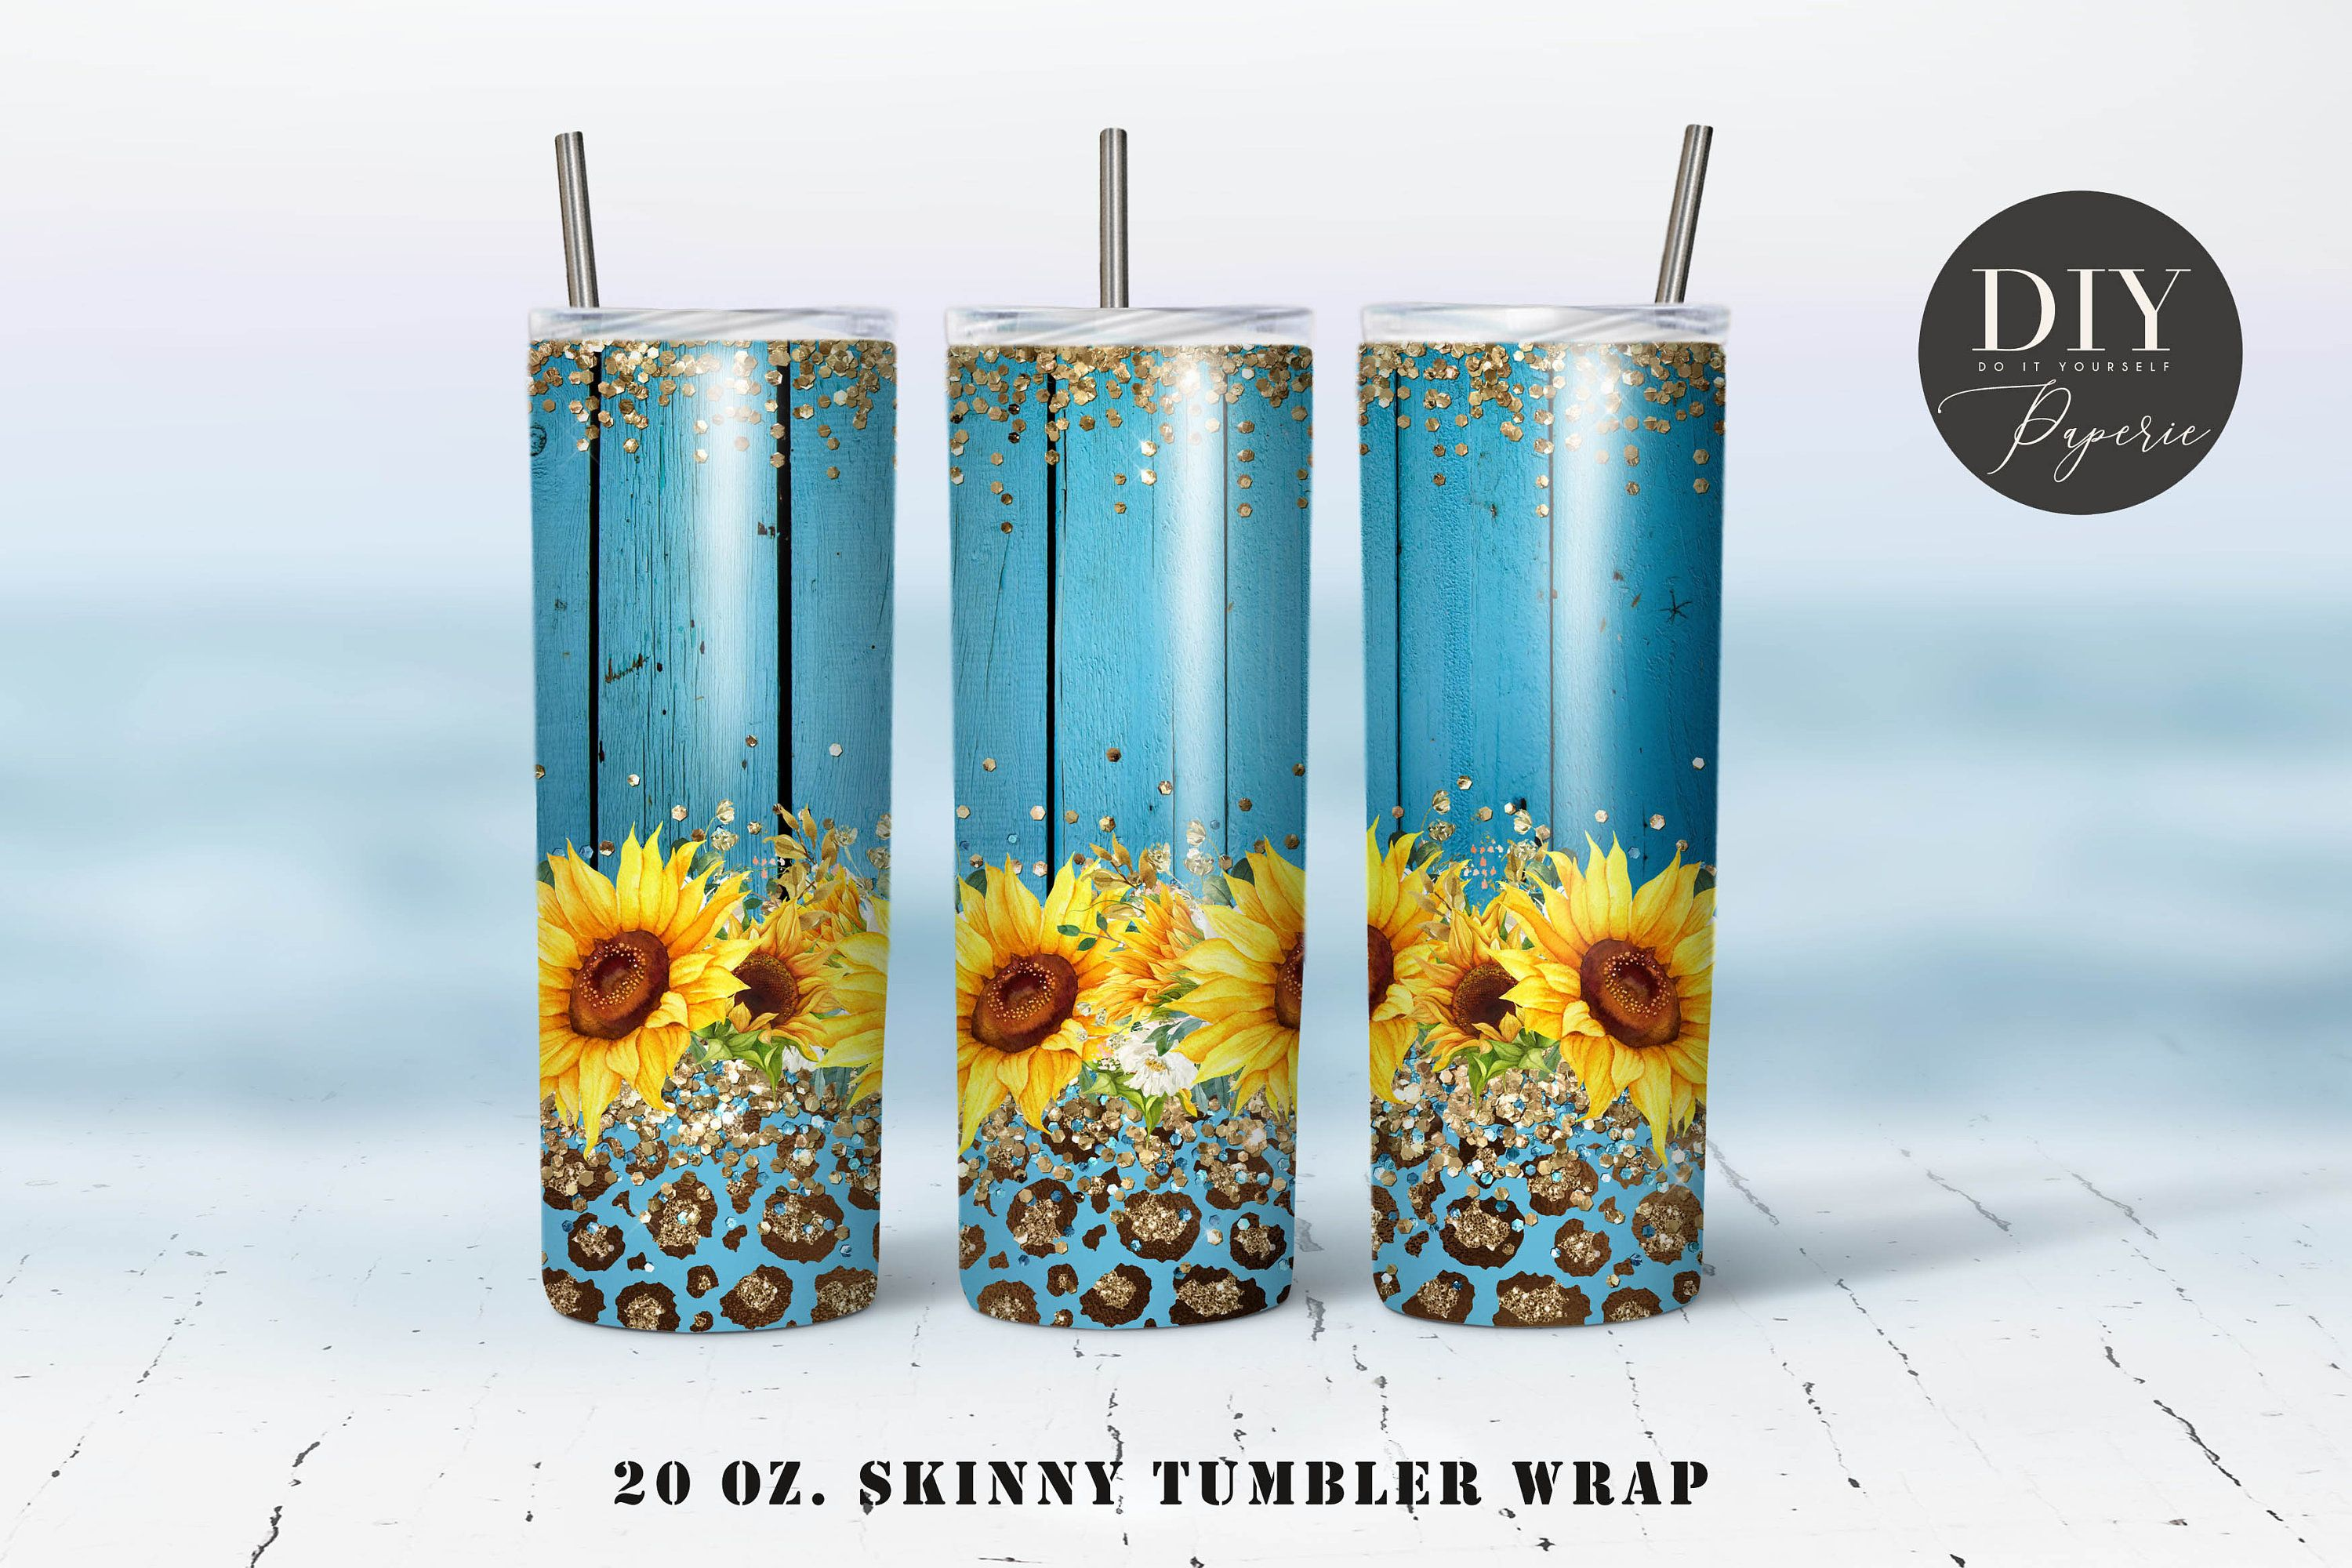 Rustic Wood Sunflower Tumbler Template Png Sublimation  20oz Skinny Tumbler Tapered and Straight Waterslide Full Wrap Digital Download